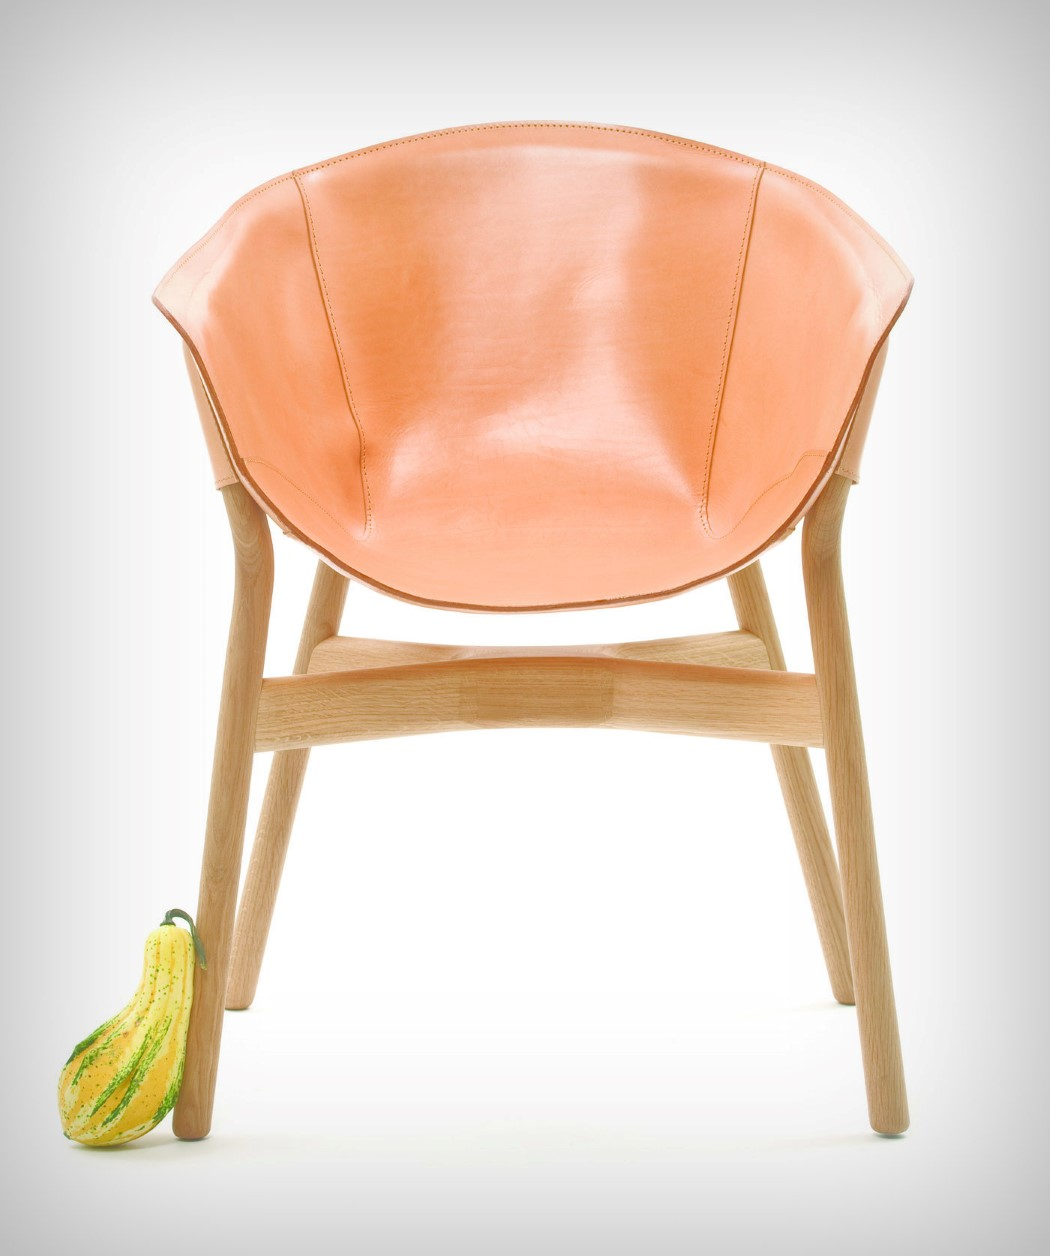 pocket_chair_03